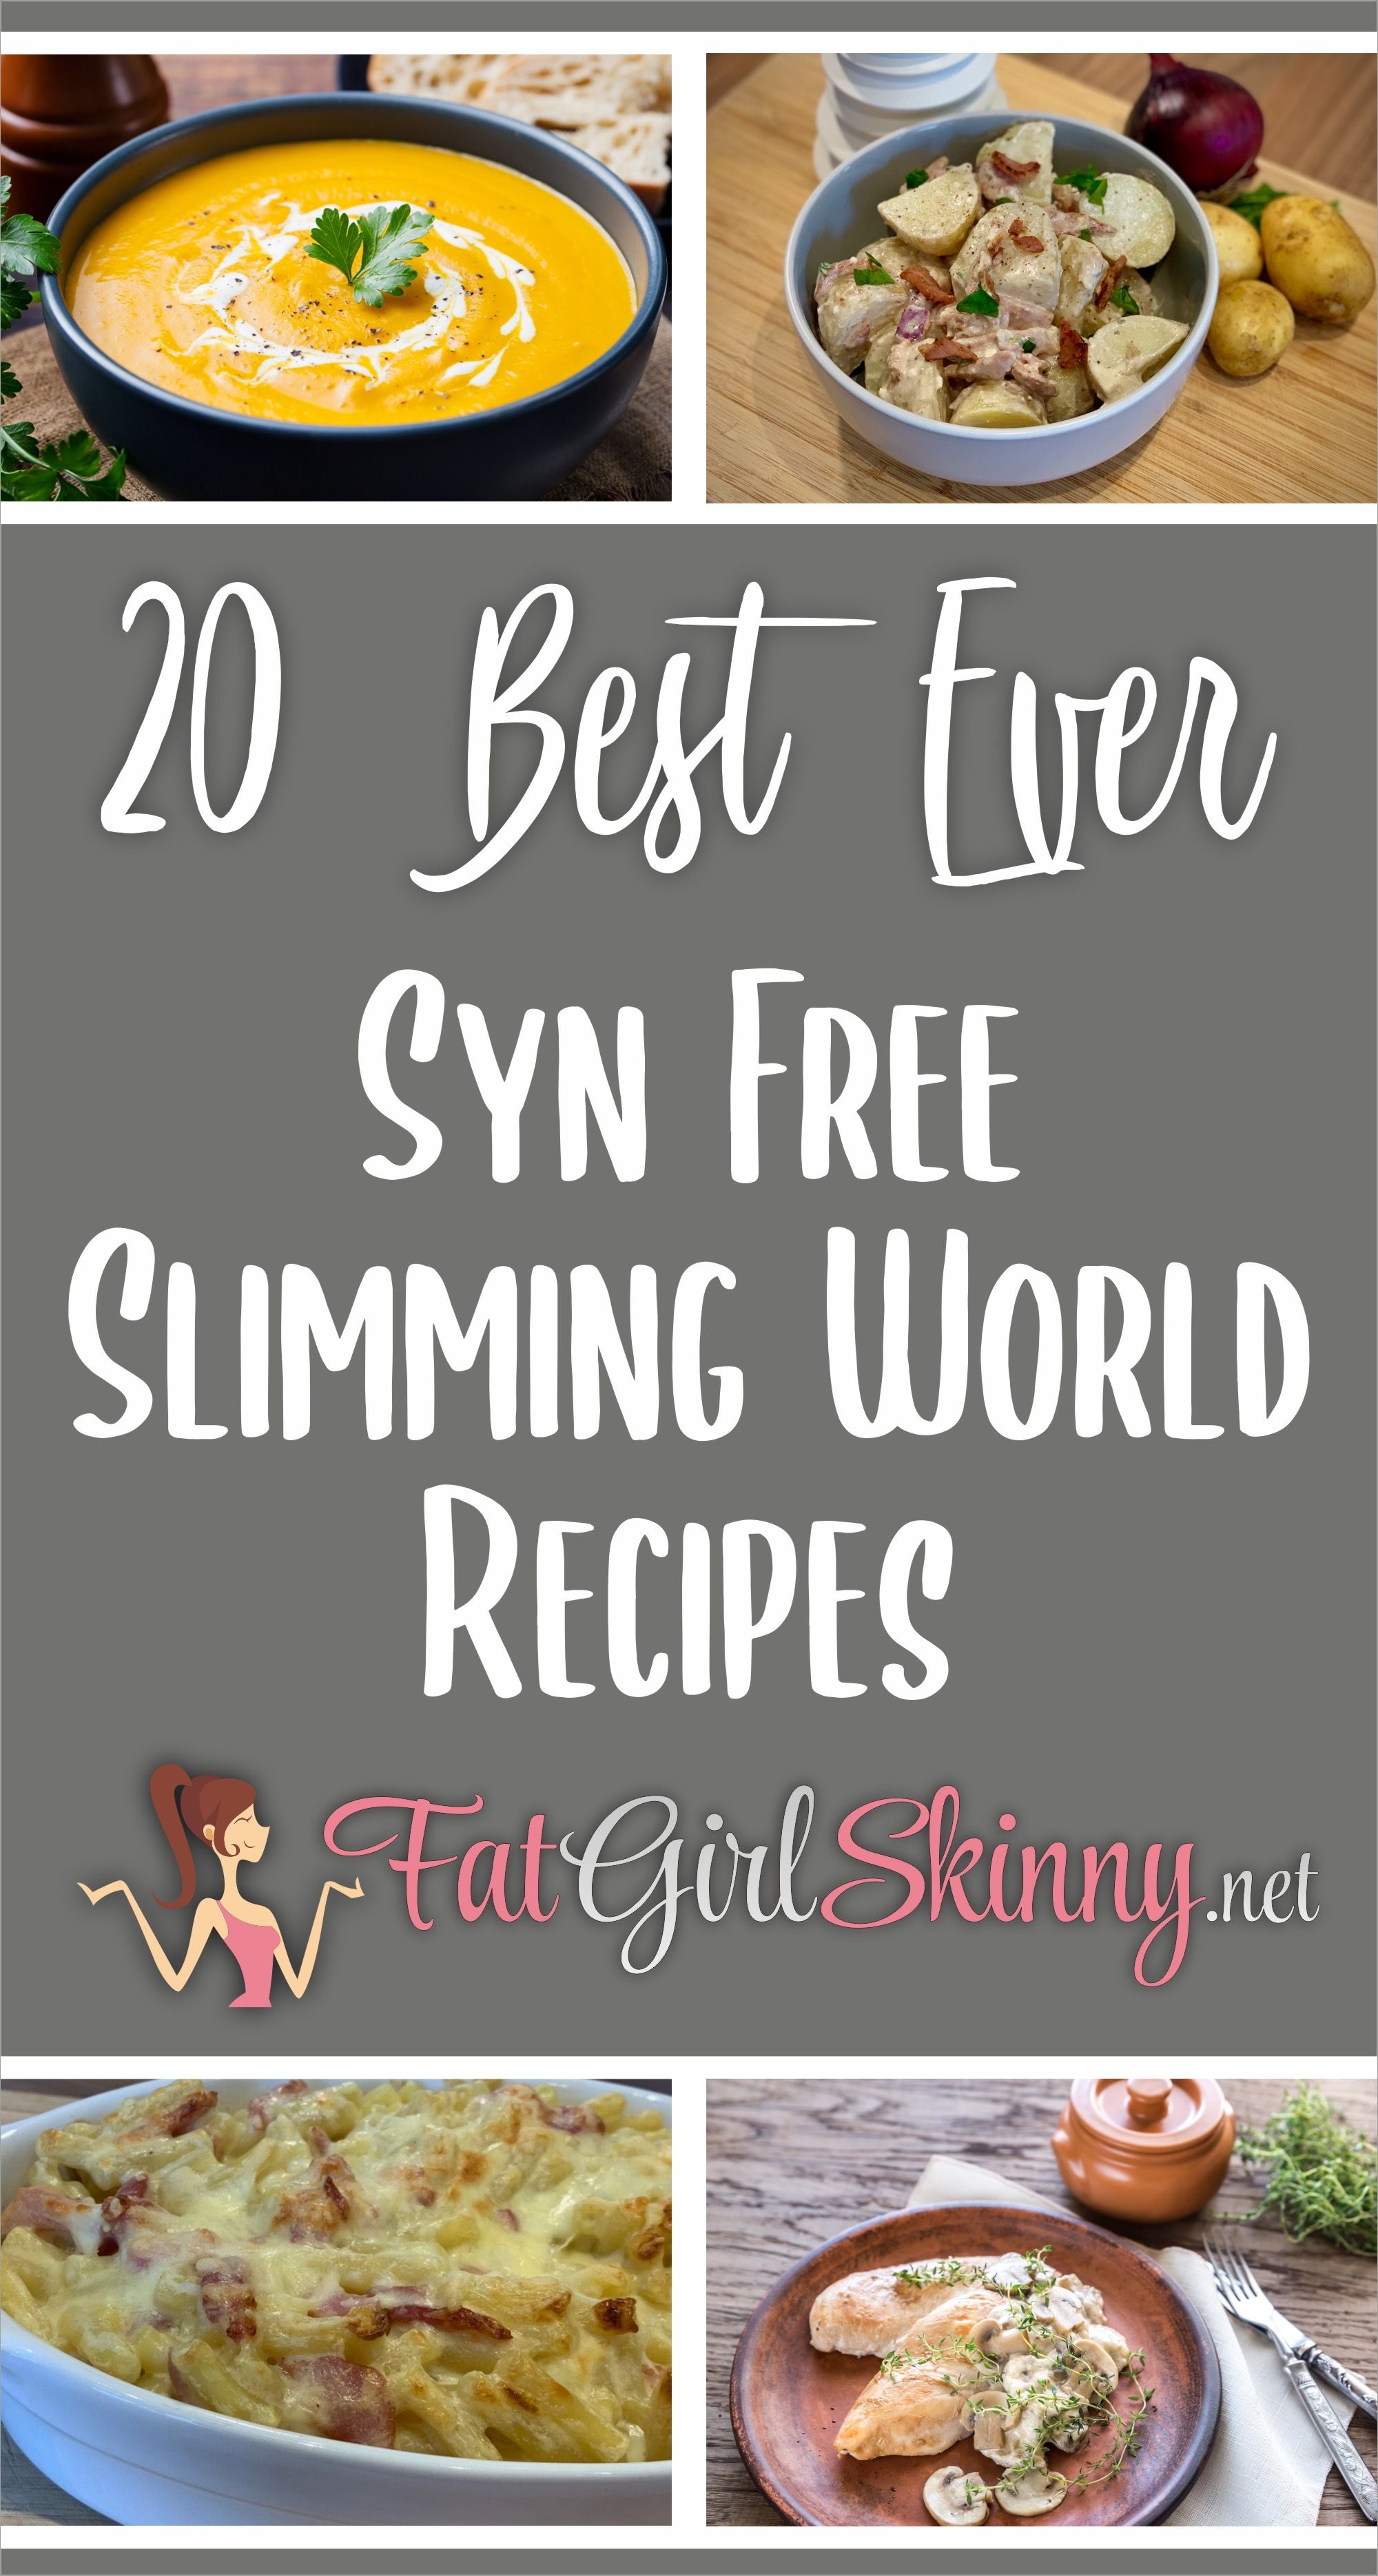 20 Best Ever Syn Free Slimming World Recipes